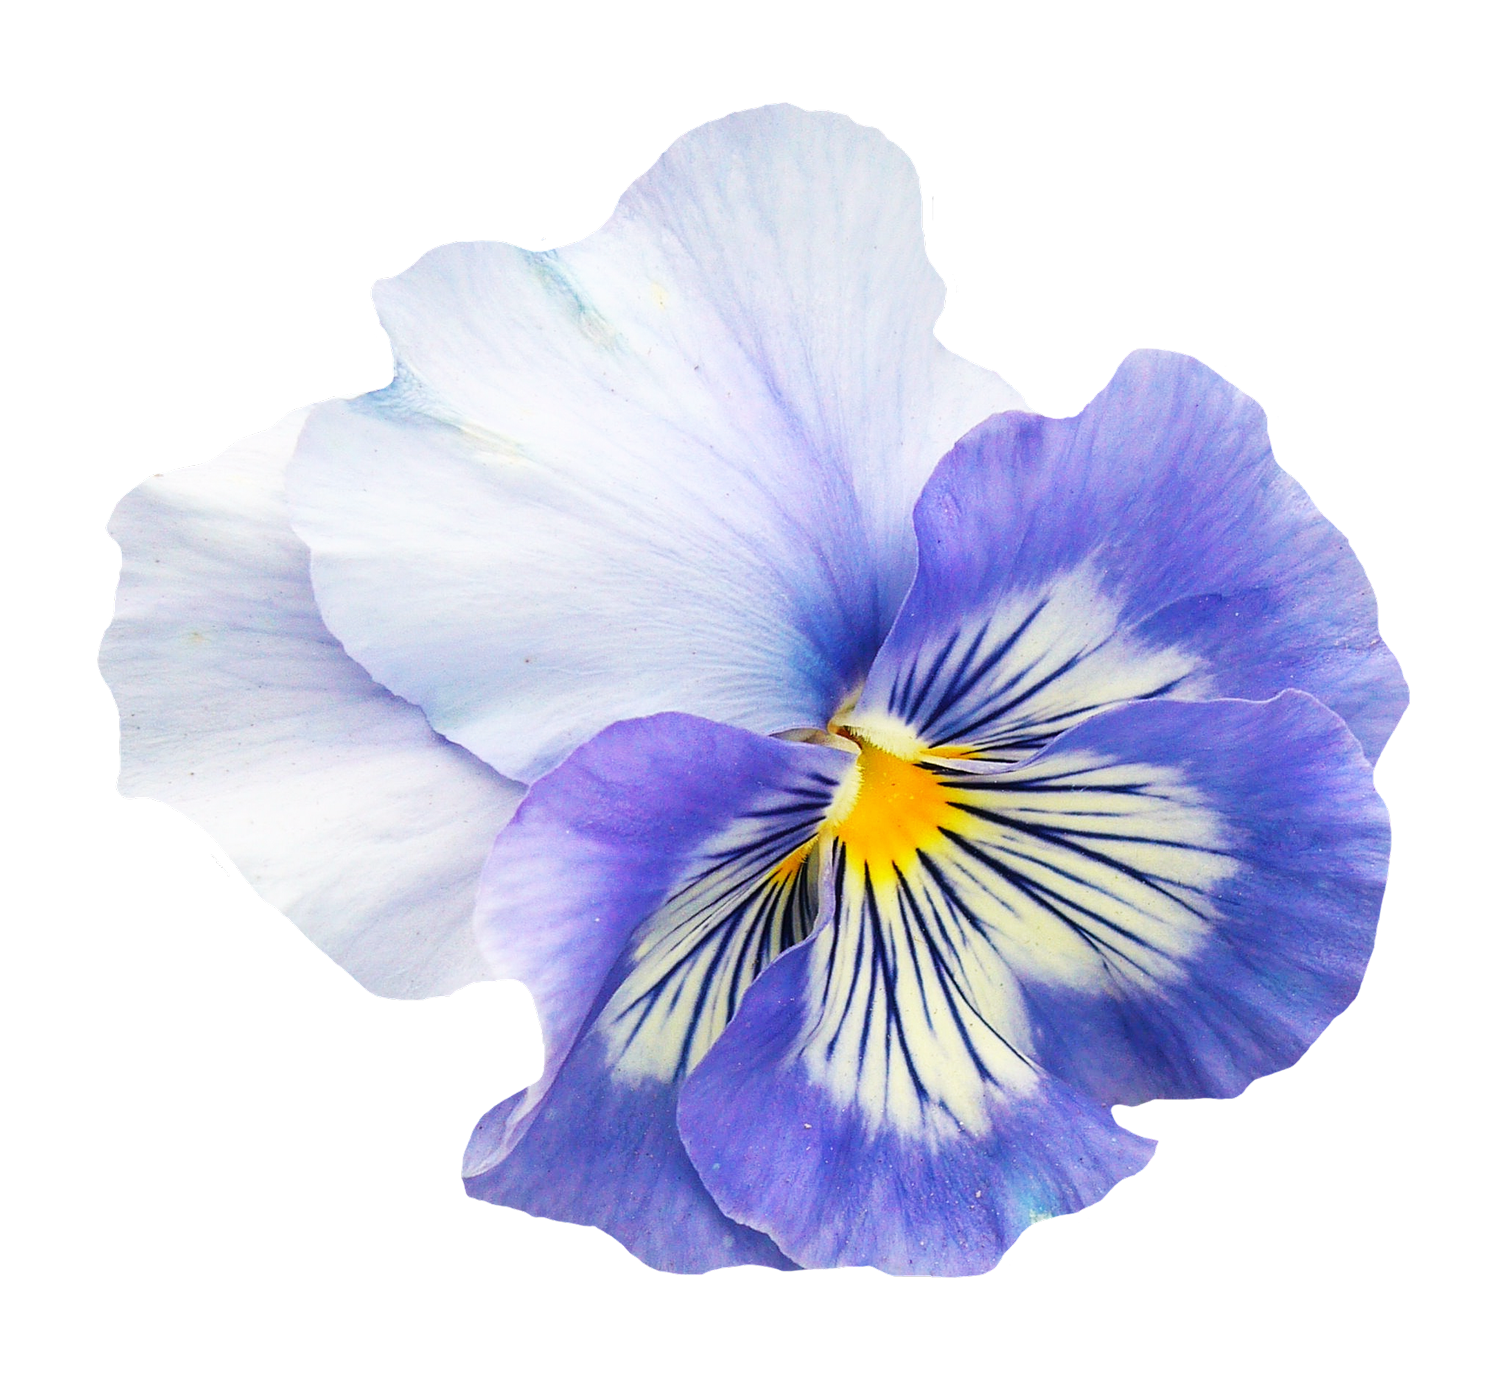 Flower Free Pansy Flower Png Image Flower Png Images Blue Flowers Images Pansies Flowers